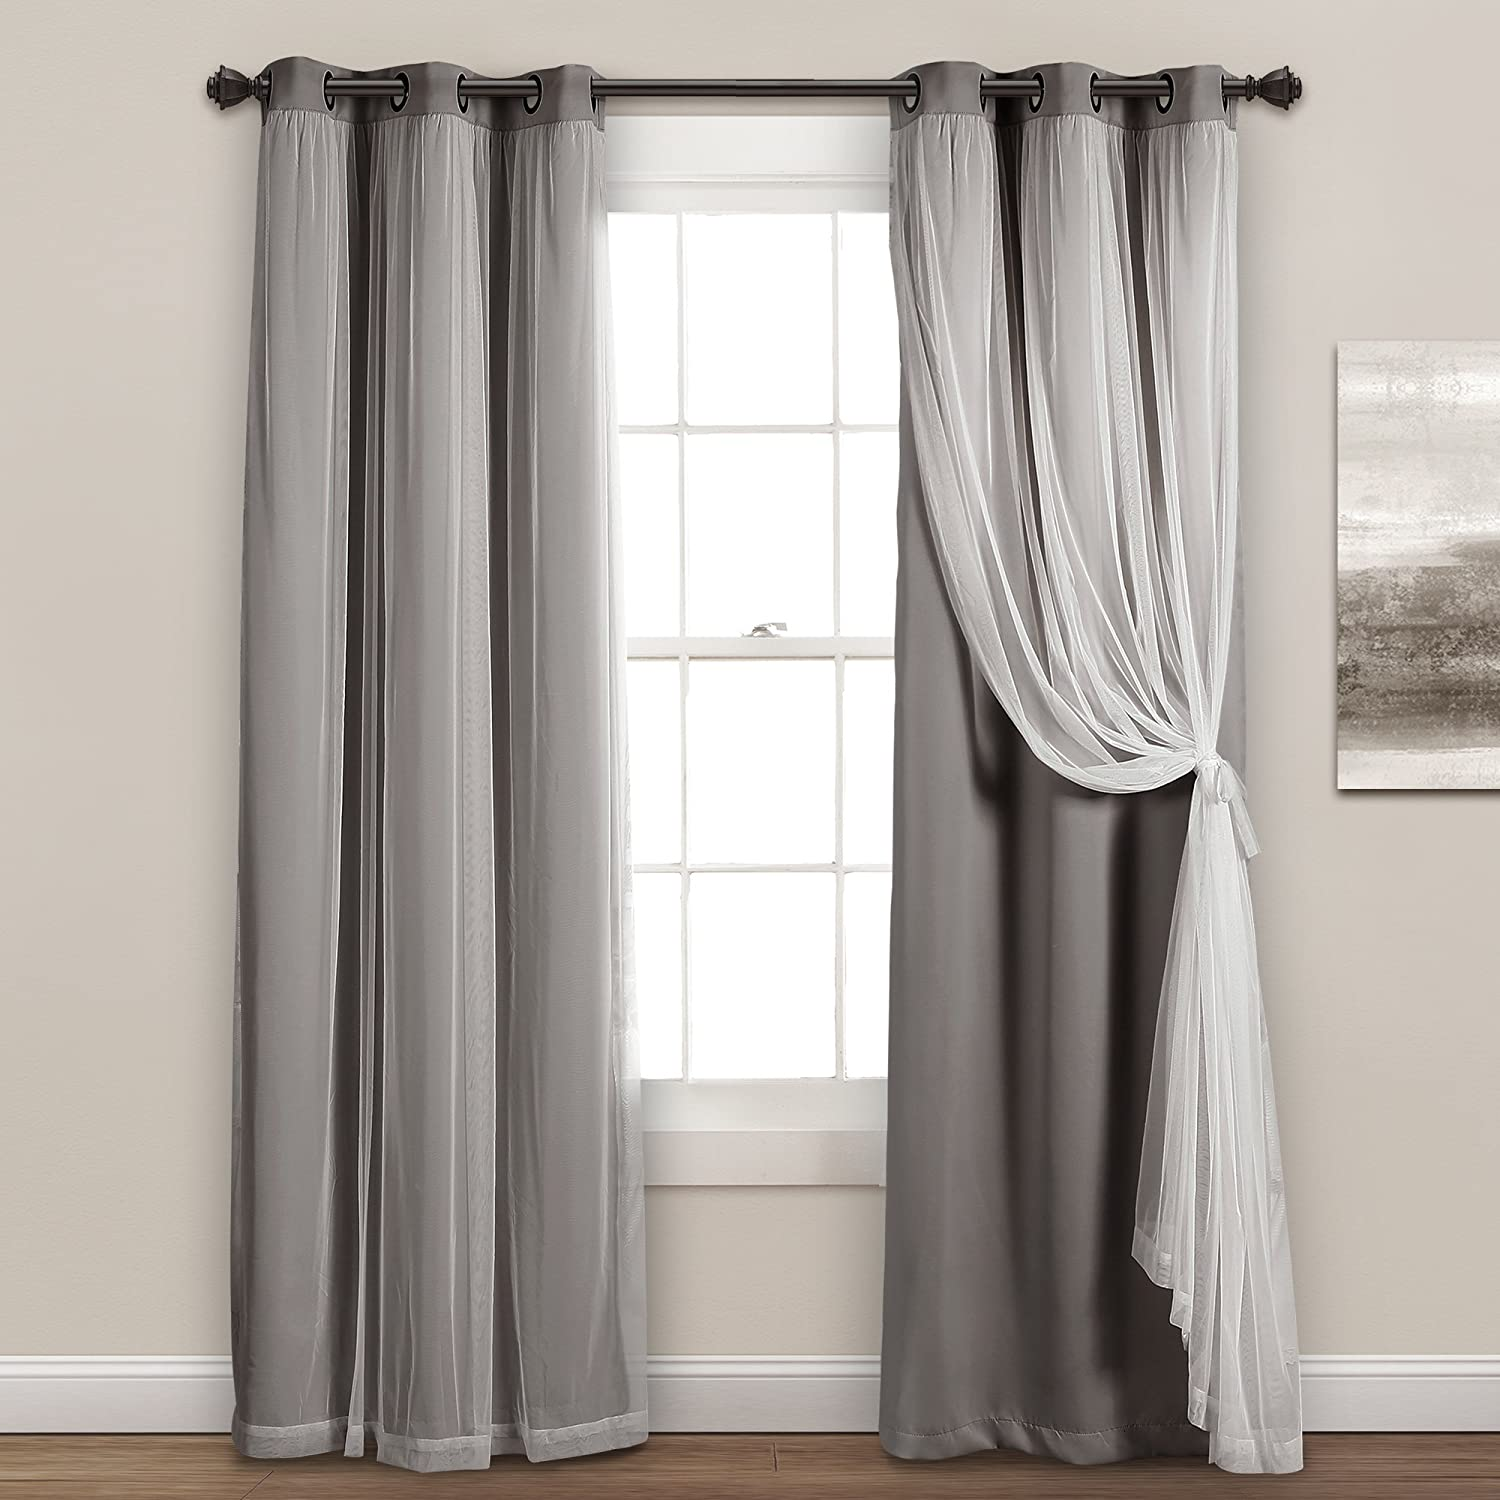 Lush Decor Sheer Grommet Panel with Insulated Blackout Lining, Room Darkening Window Curtain Set (Pair), 84